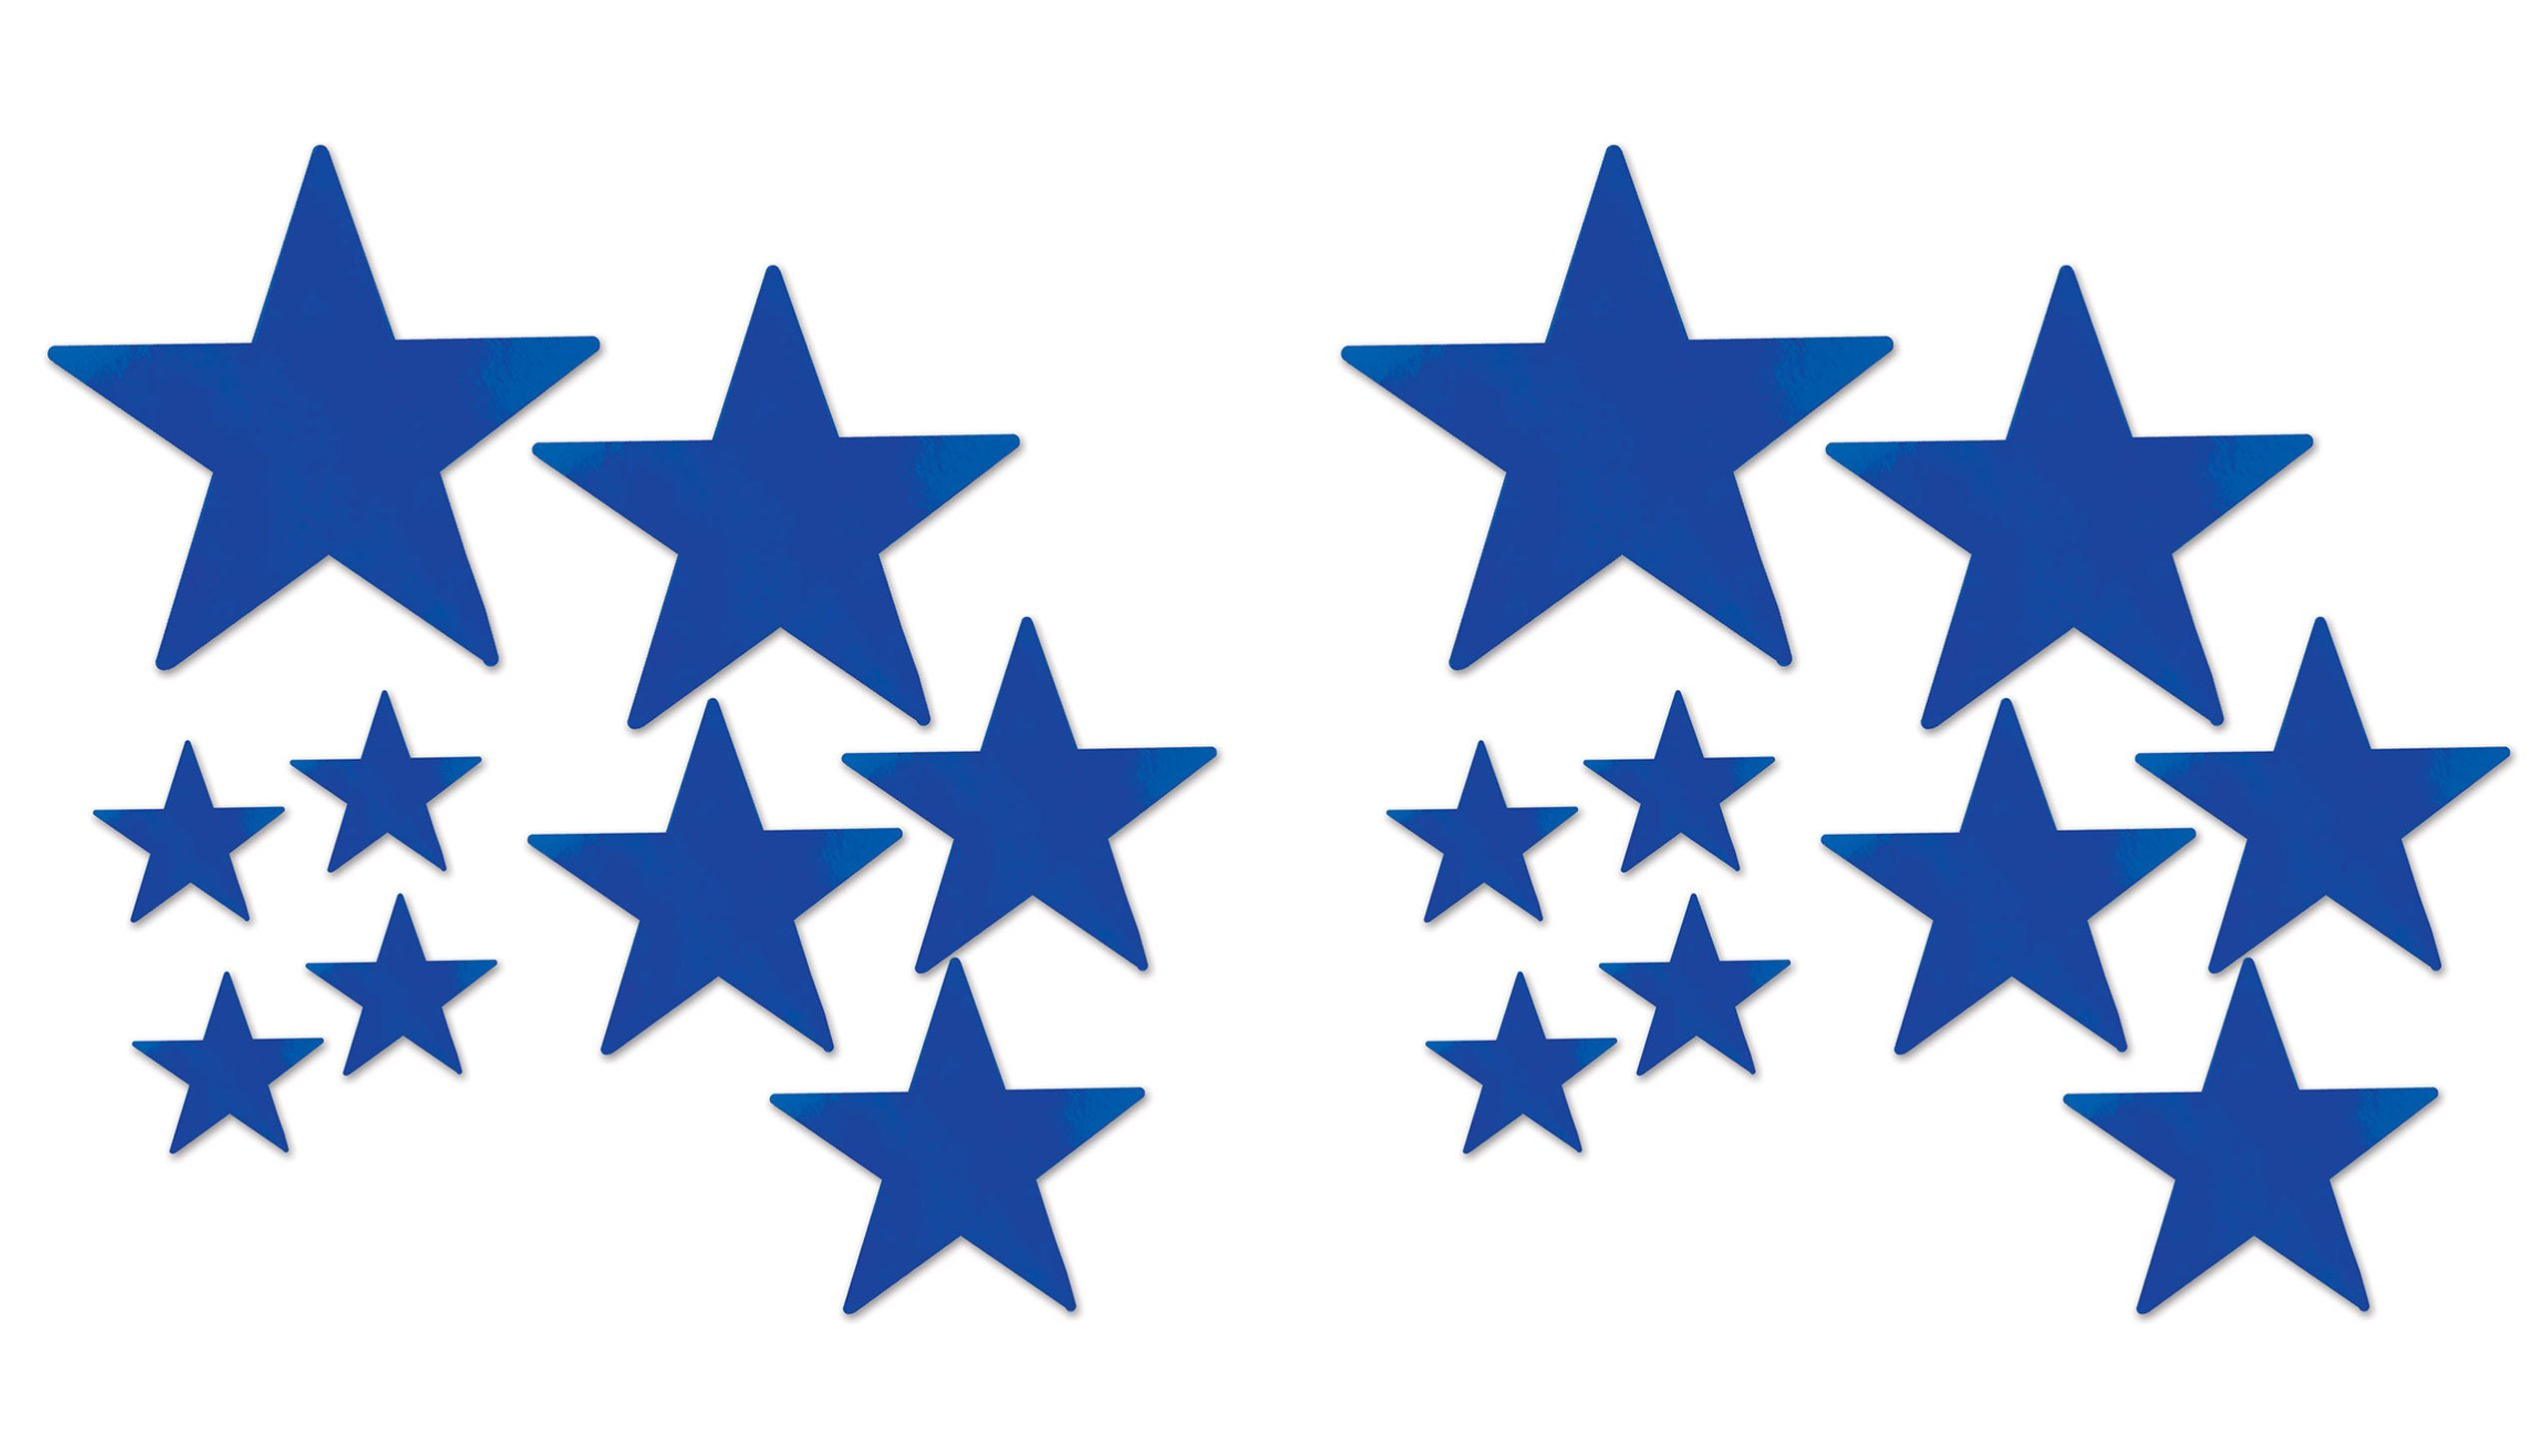 Beistle 53306-B Beistle 53306-B, 18 Piece Packaged Foil Star Cutouts, Assorted Sizes (Blue), Assorted Sizes, Blue